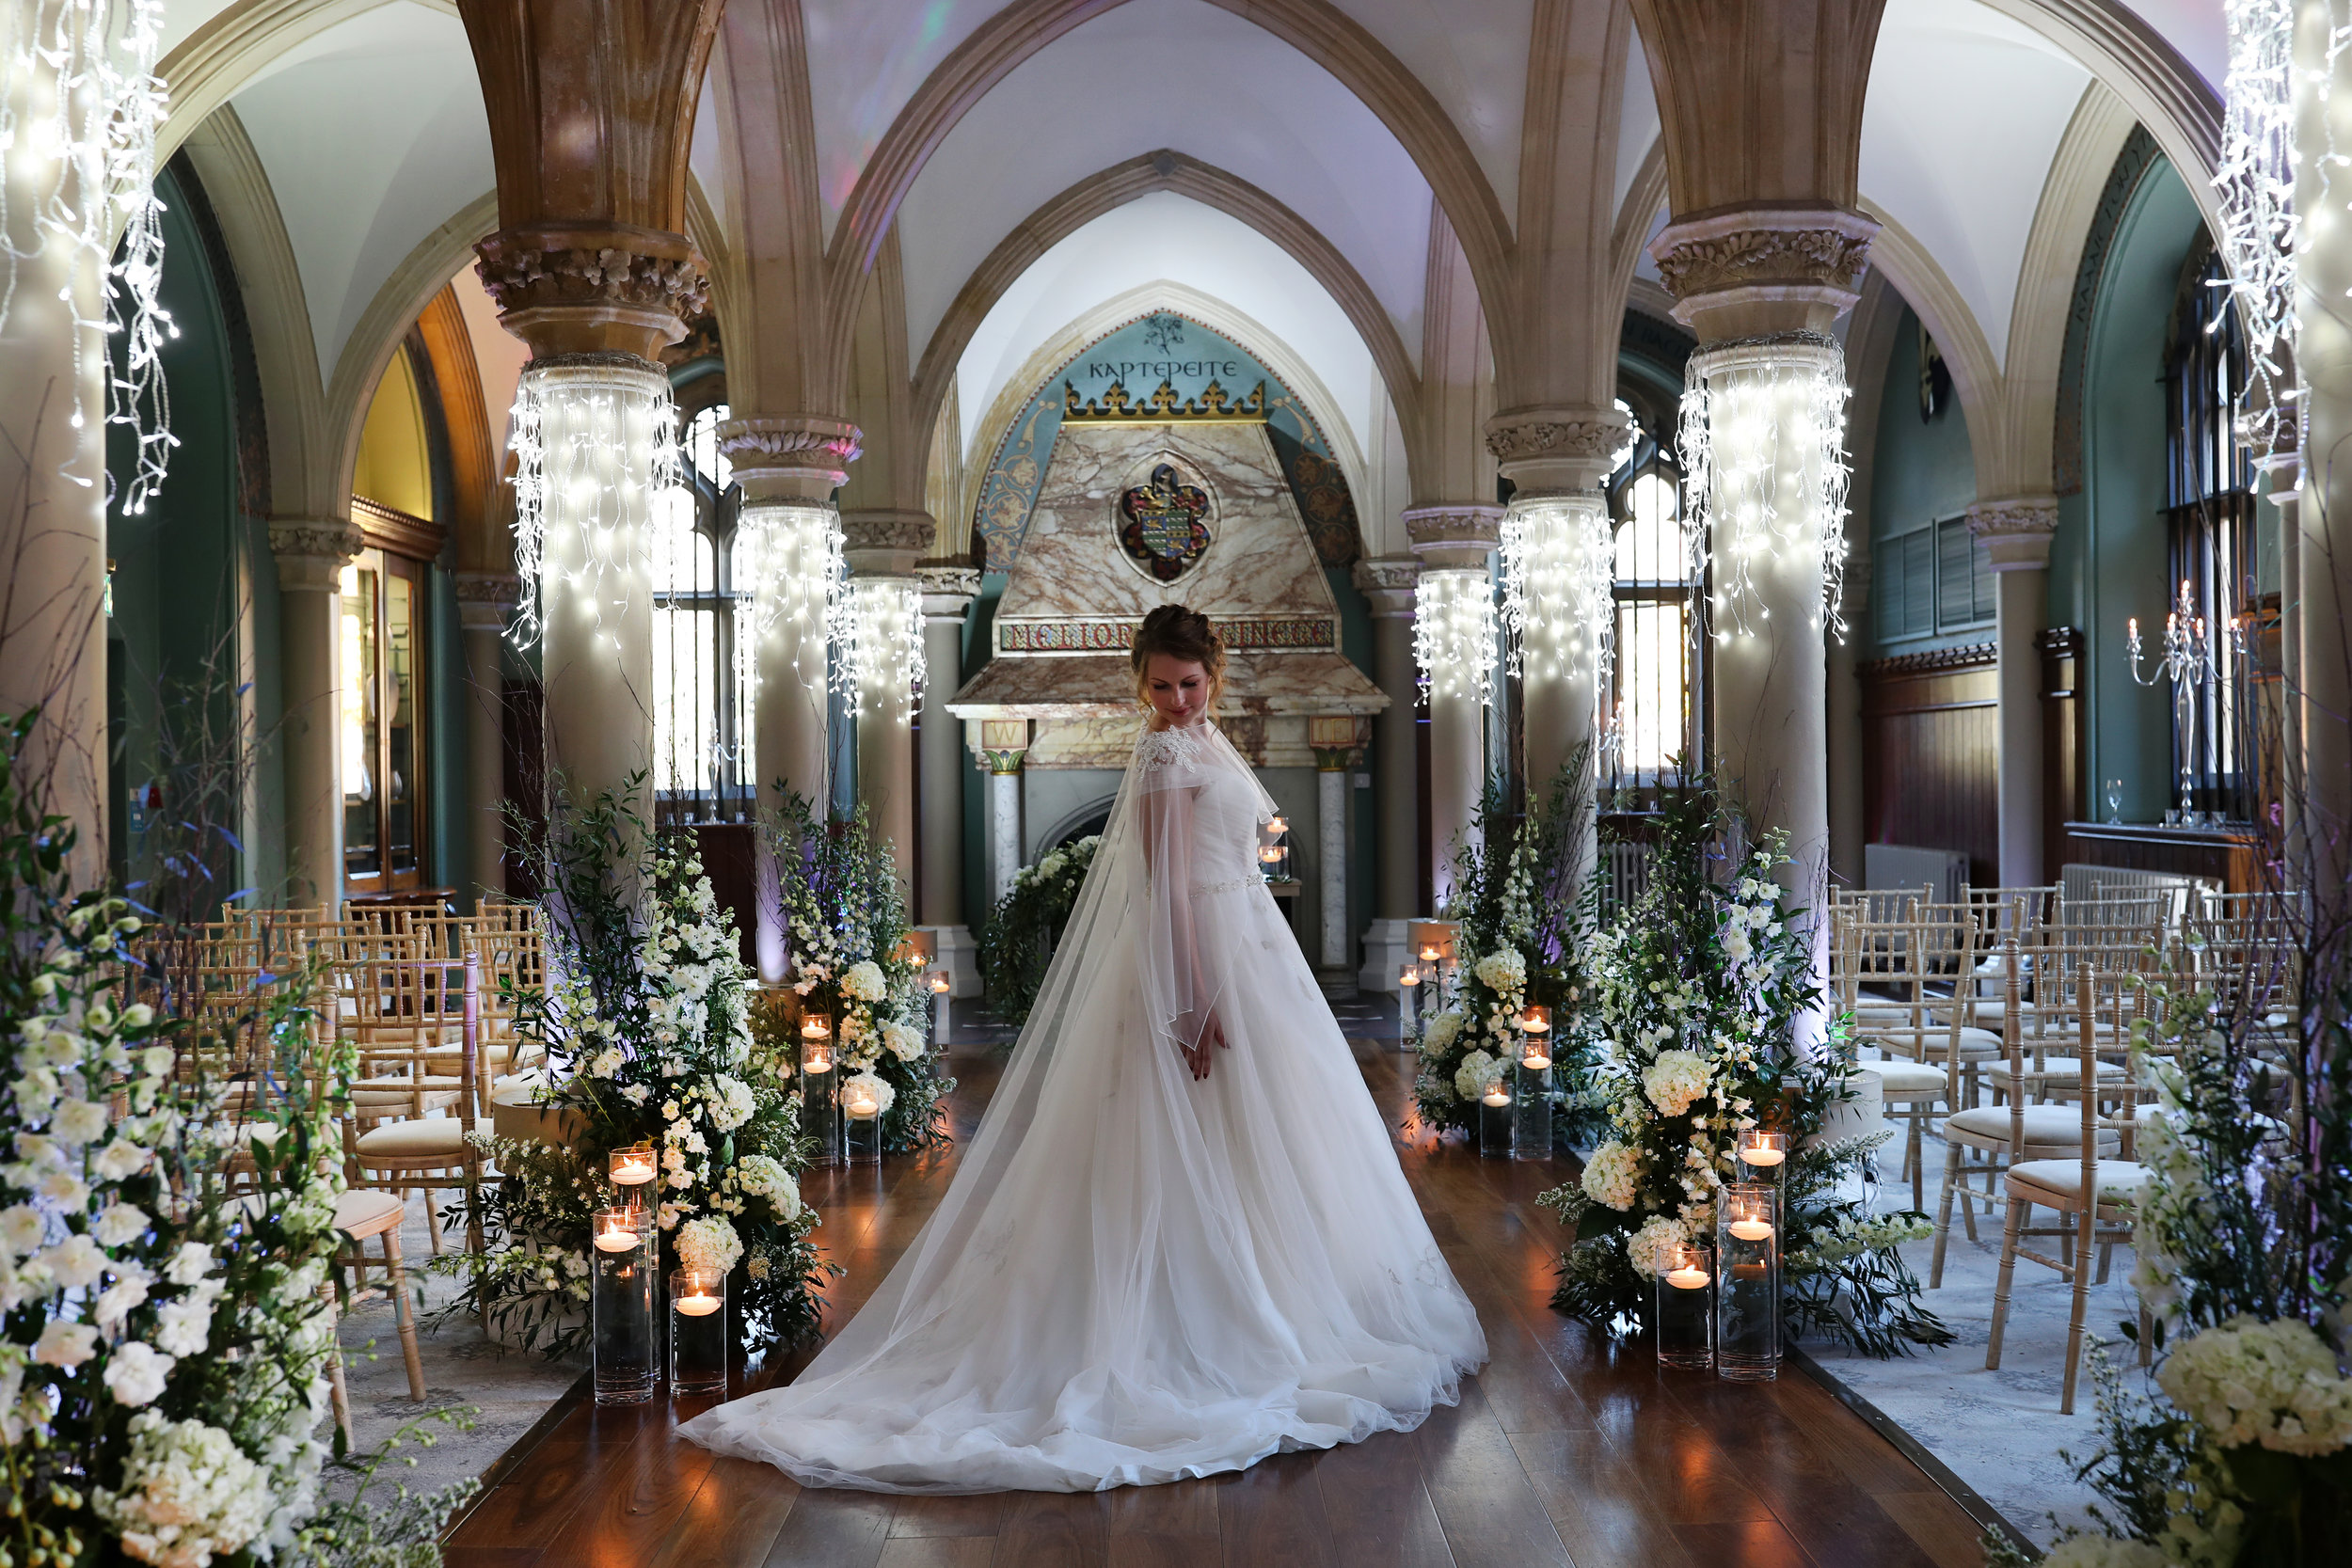 Be Unveiled Photography - Dress by BRIDE by Aster - Decor by Flowers by Elaine